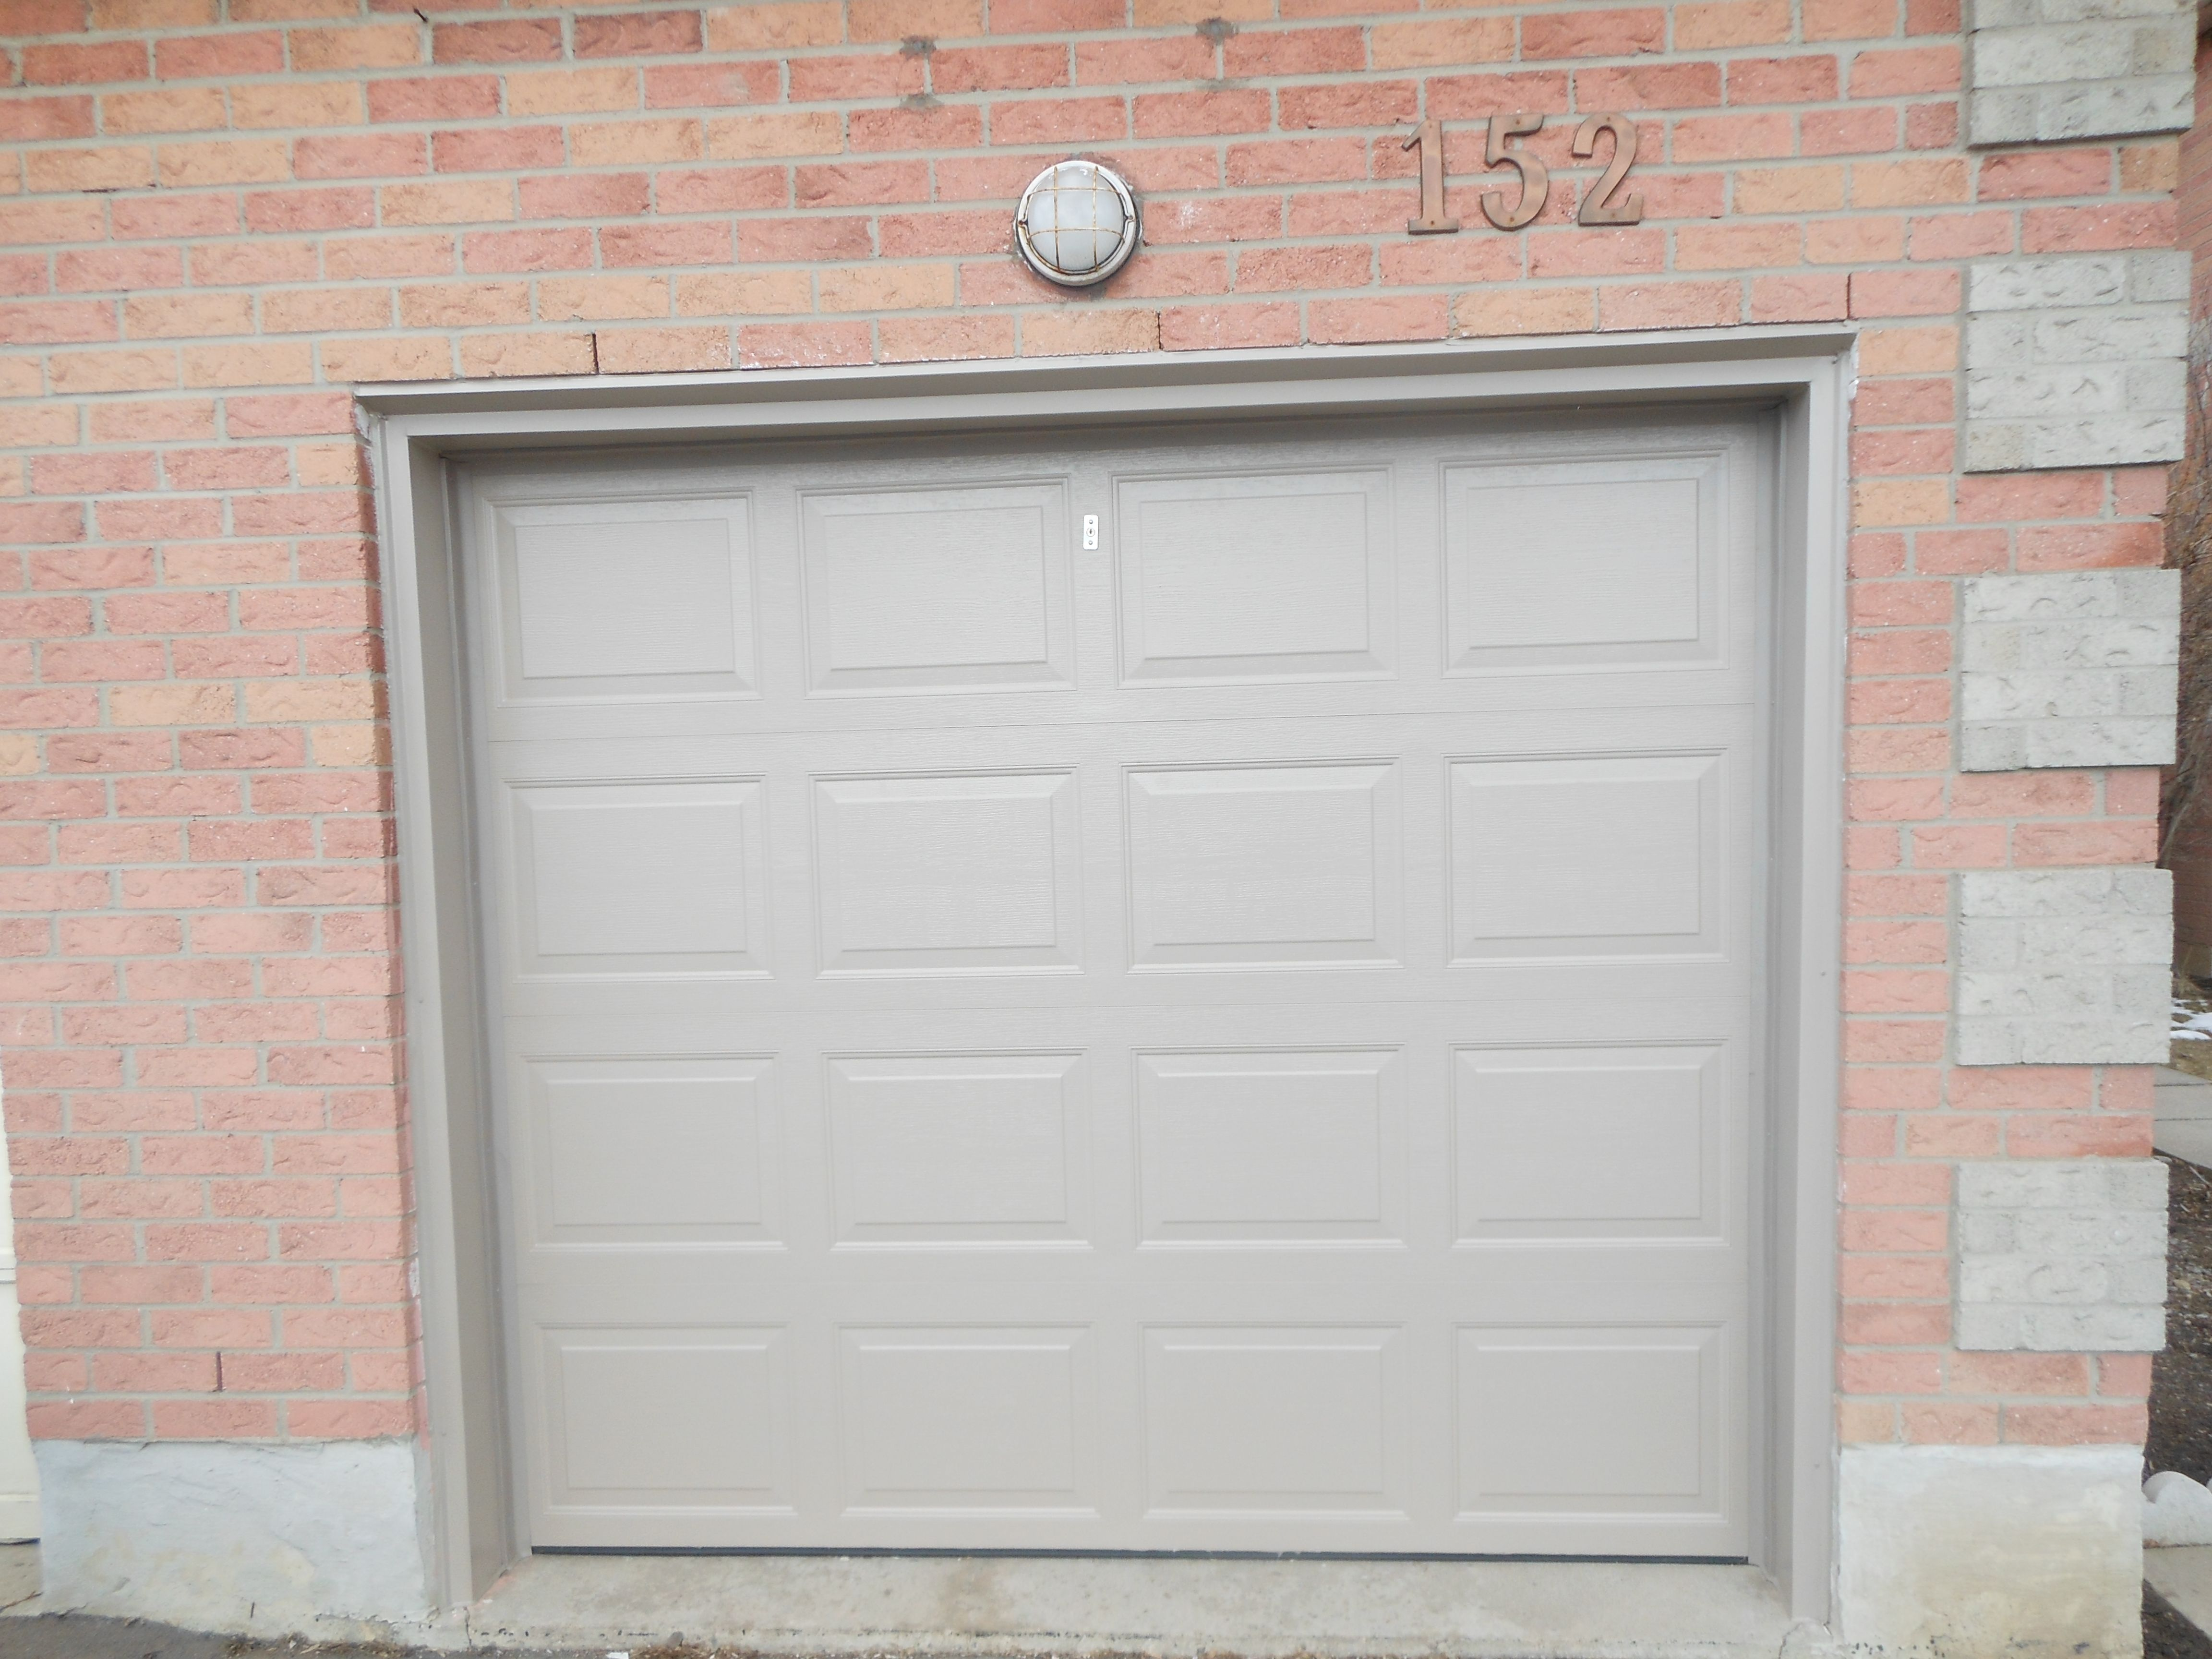 a completed single garage door replaced with a full capping ...